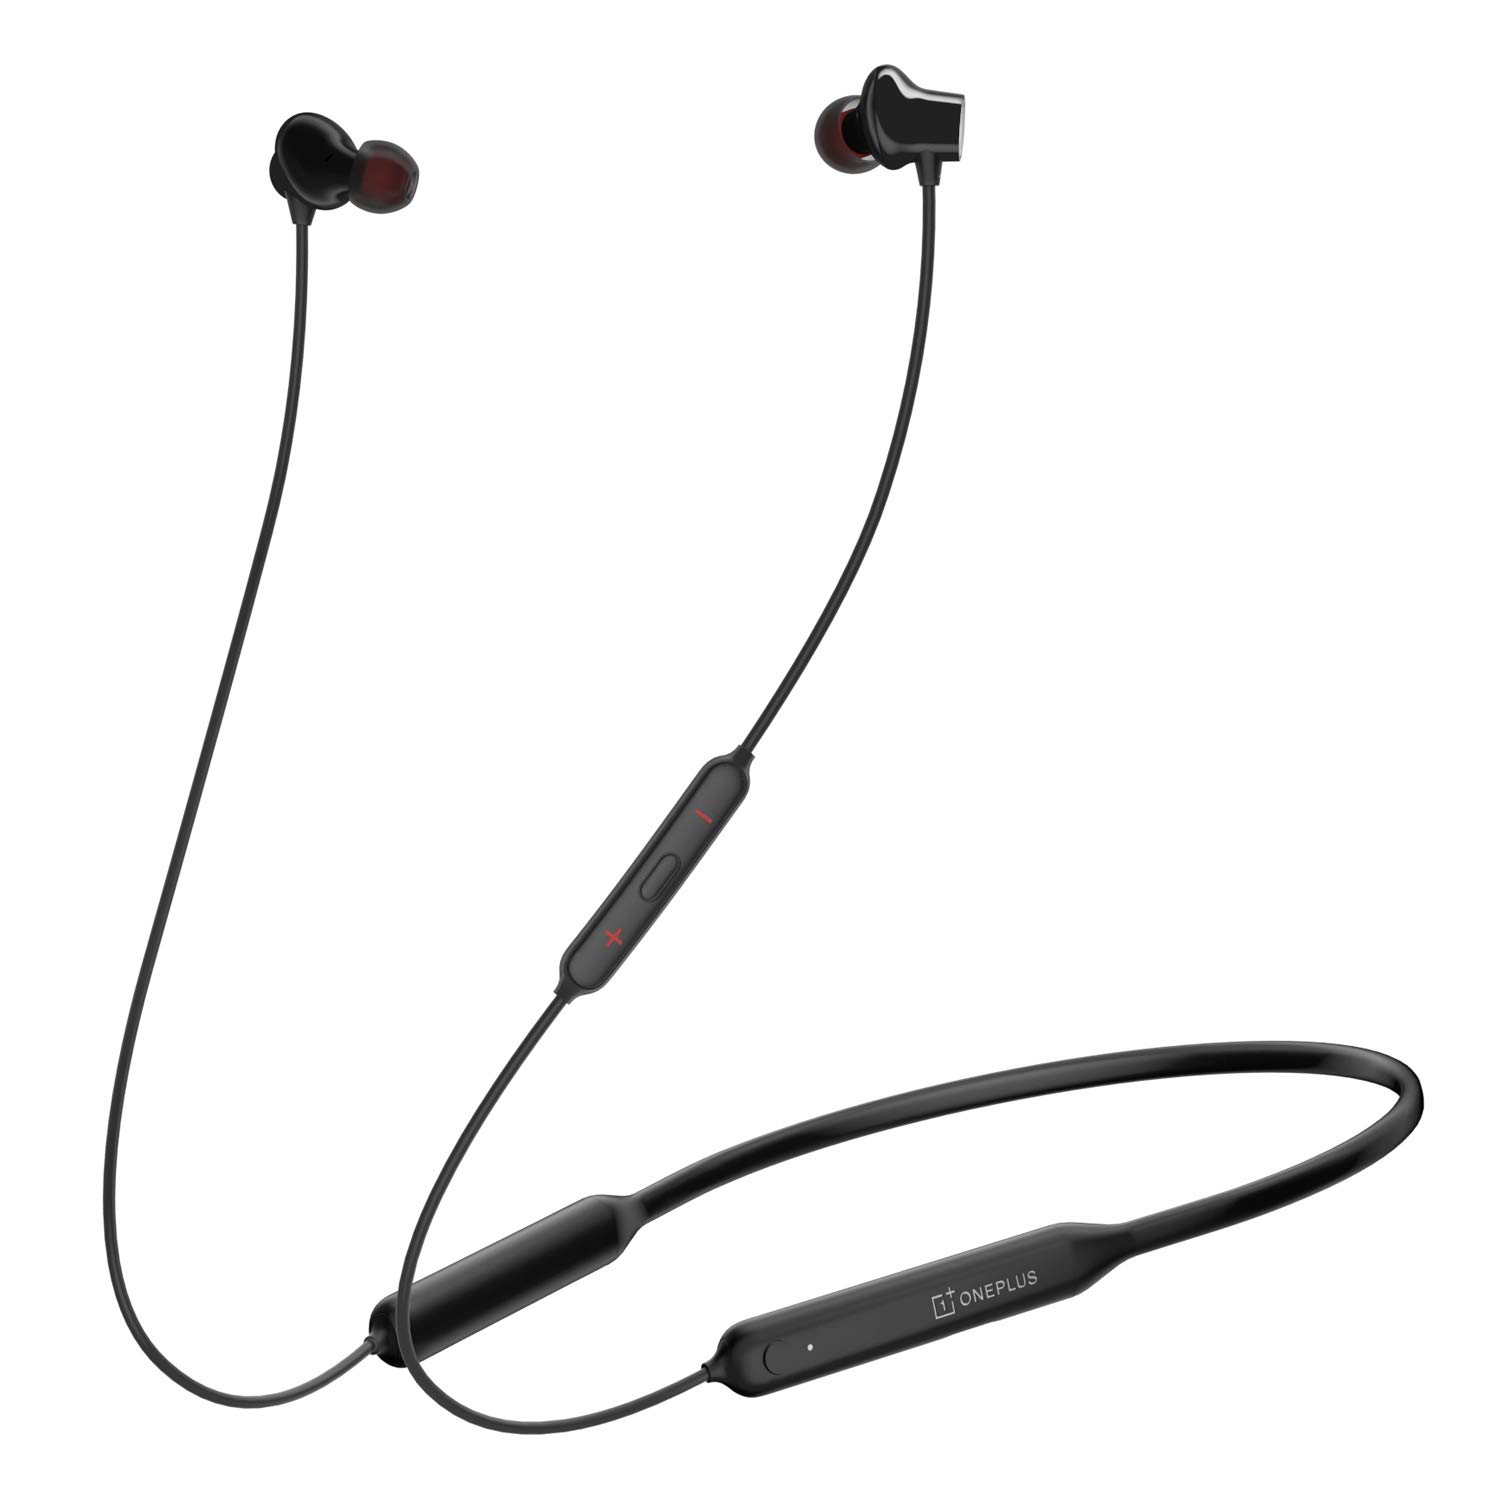 Best Selling Bluetooth Headset Deals On Amazon Prime Day Technosports